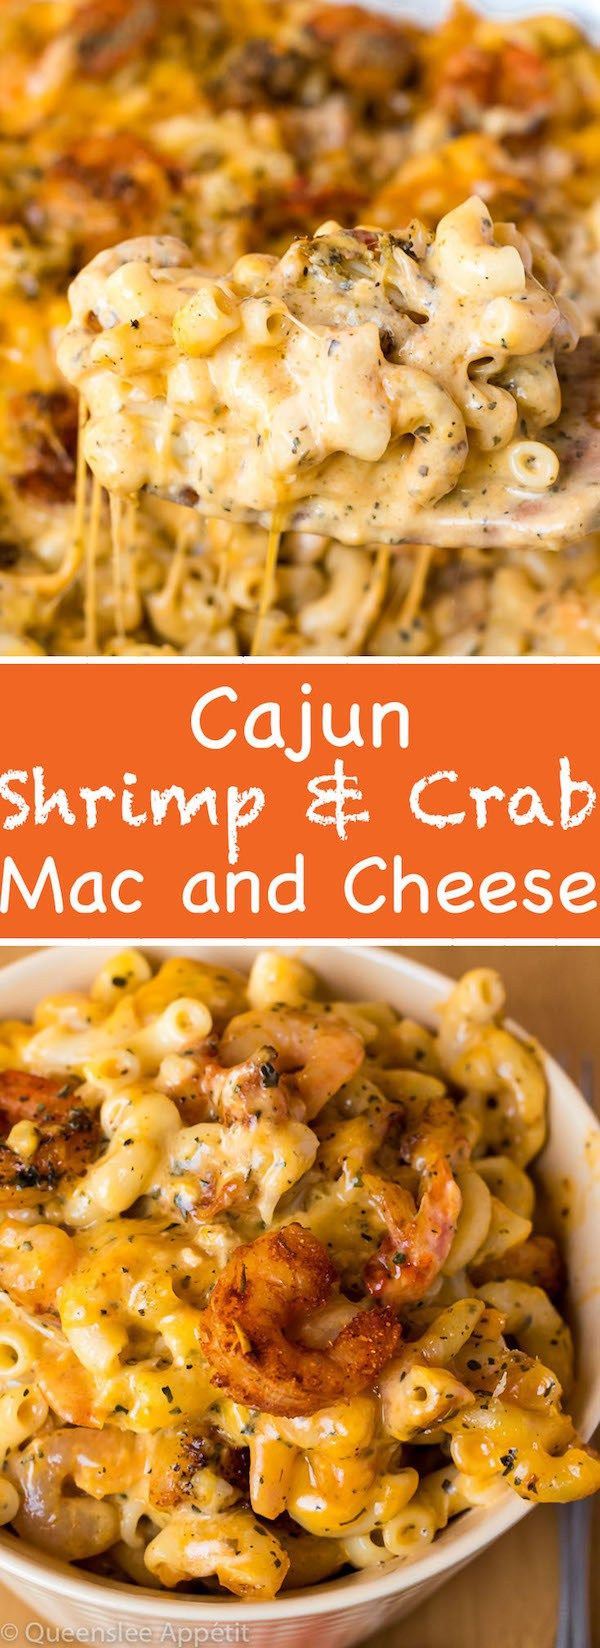 Cajun Shrimp and Crab Mac and Cheese #cajunfood